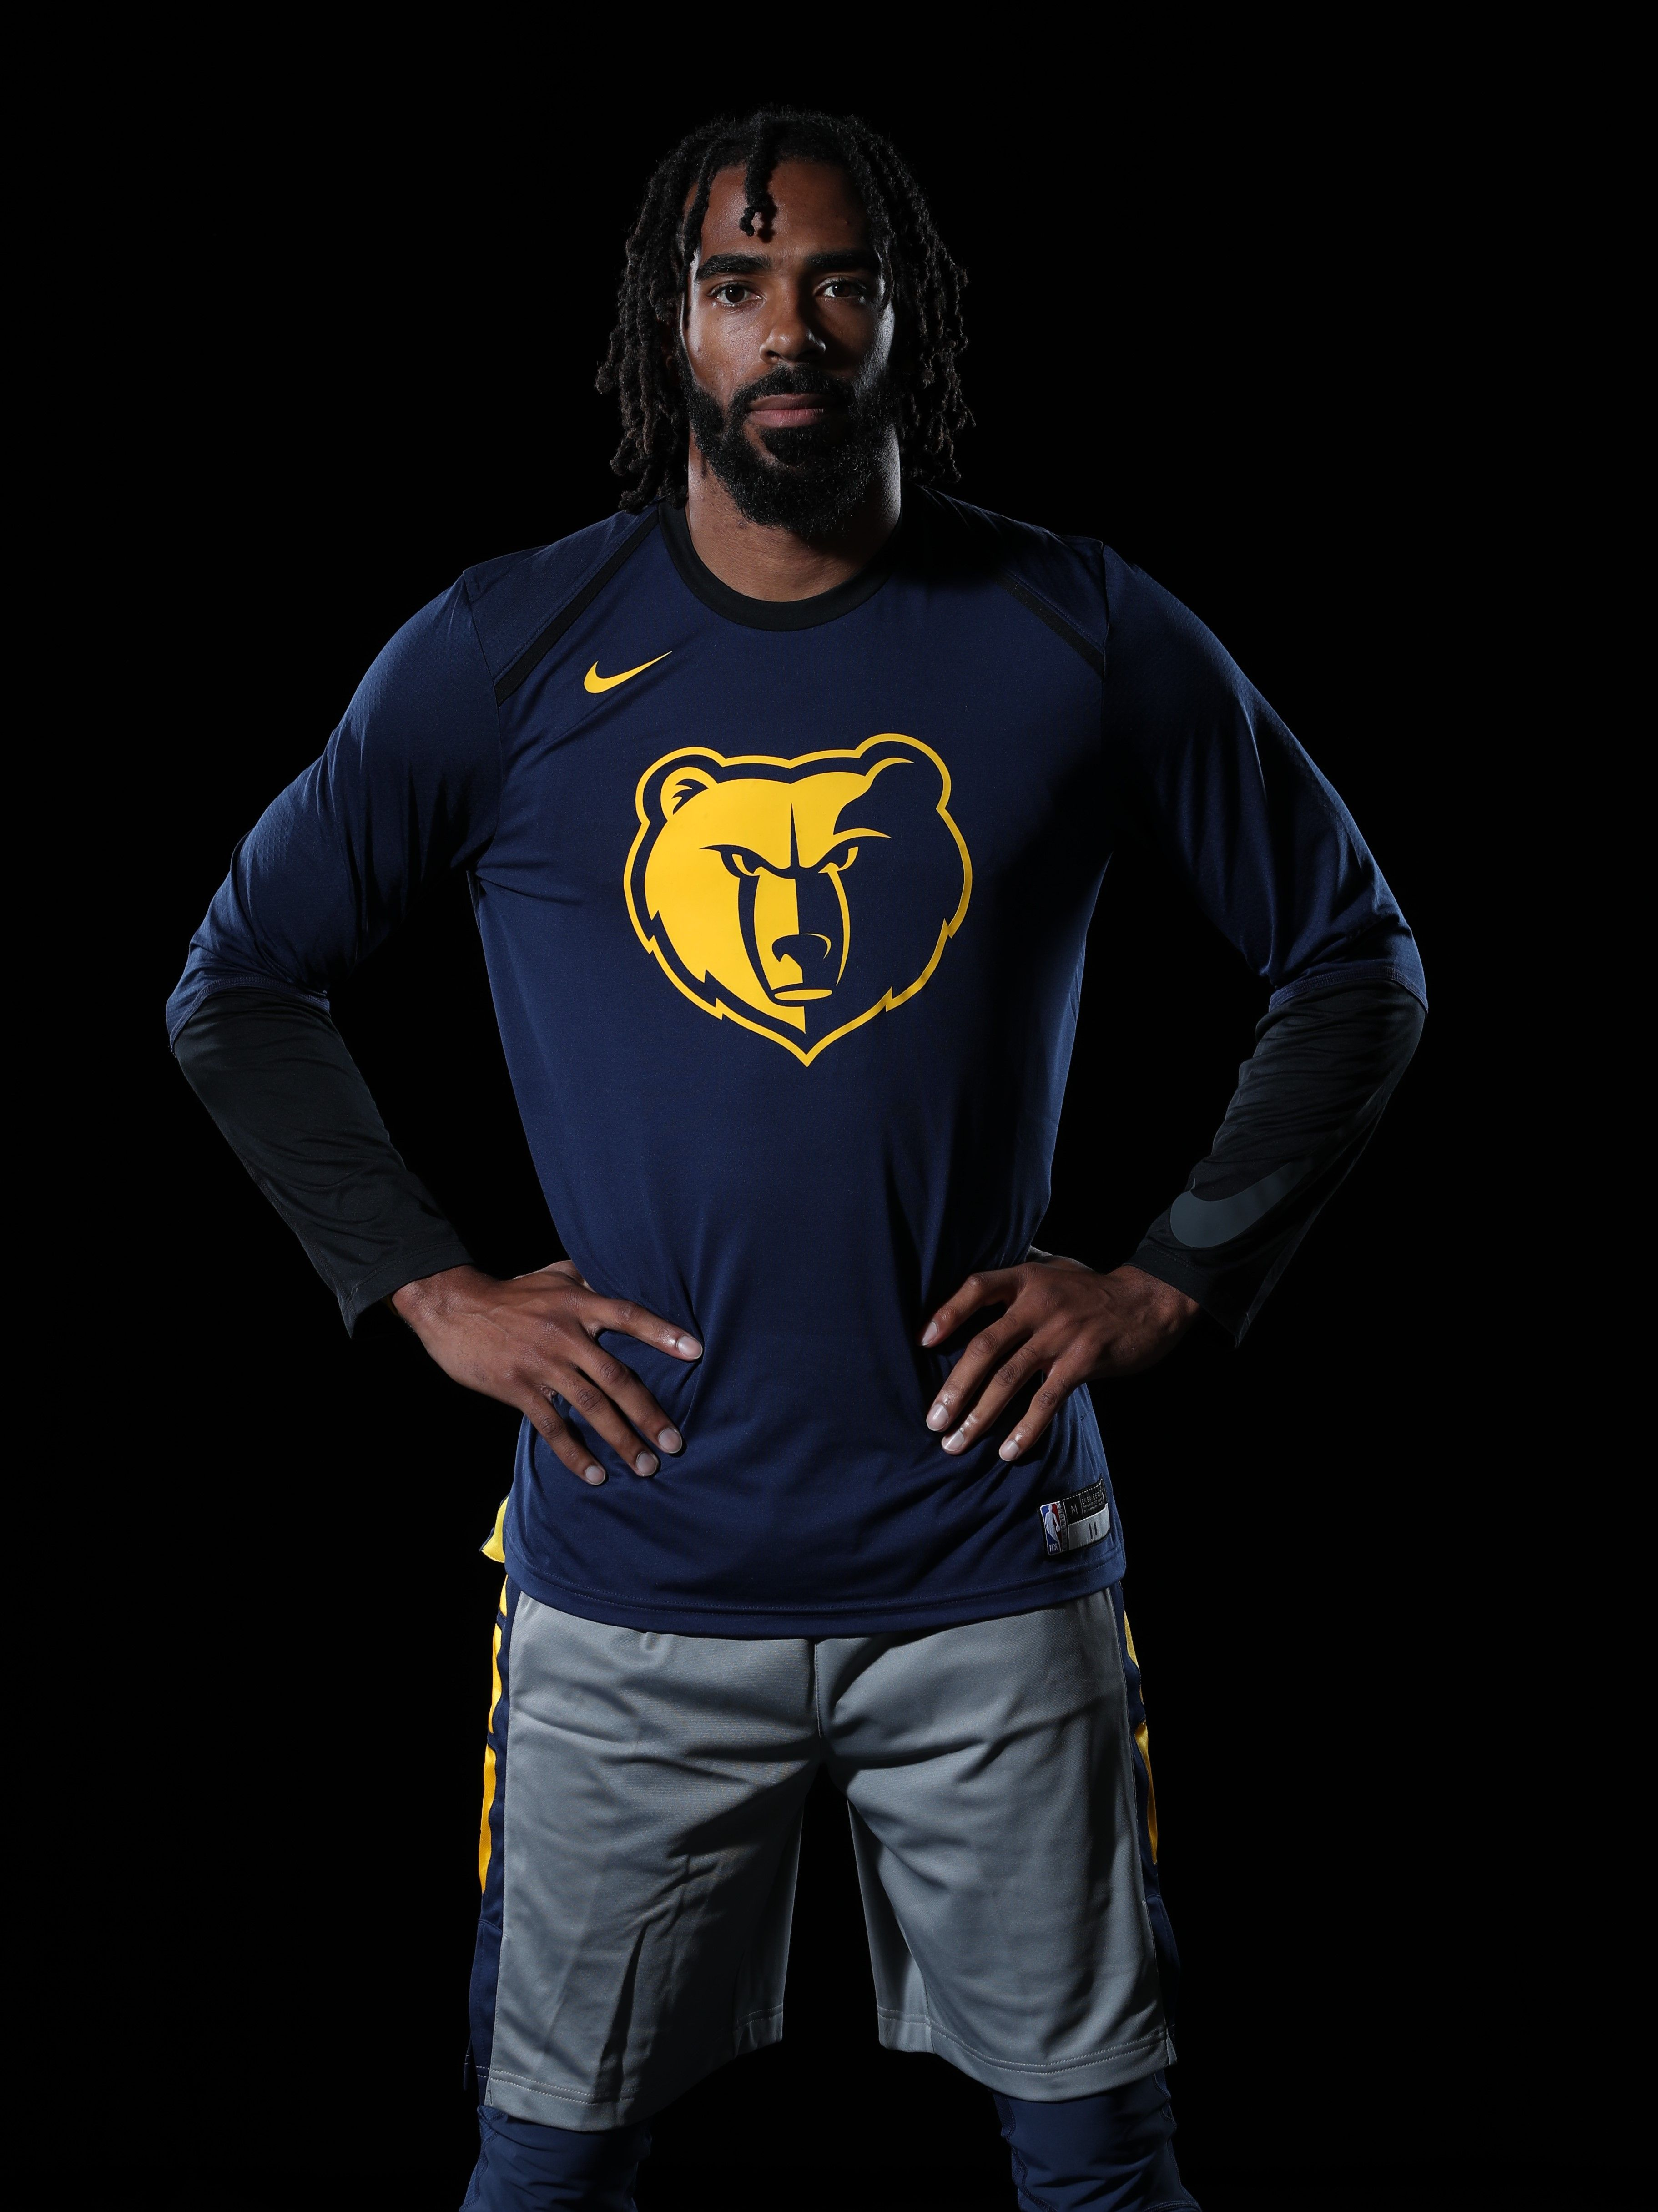 City Jersey Warmup Long Sleeve Tshirt Men Memphis Grizzlies Professional Sports